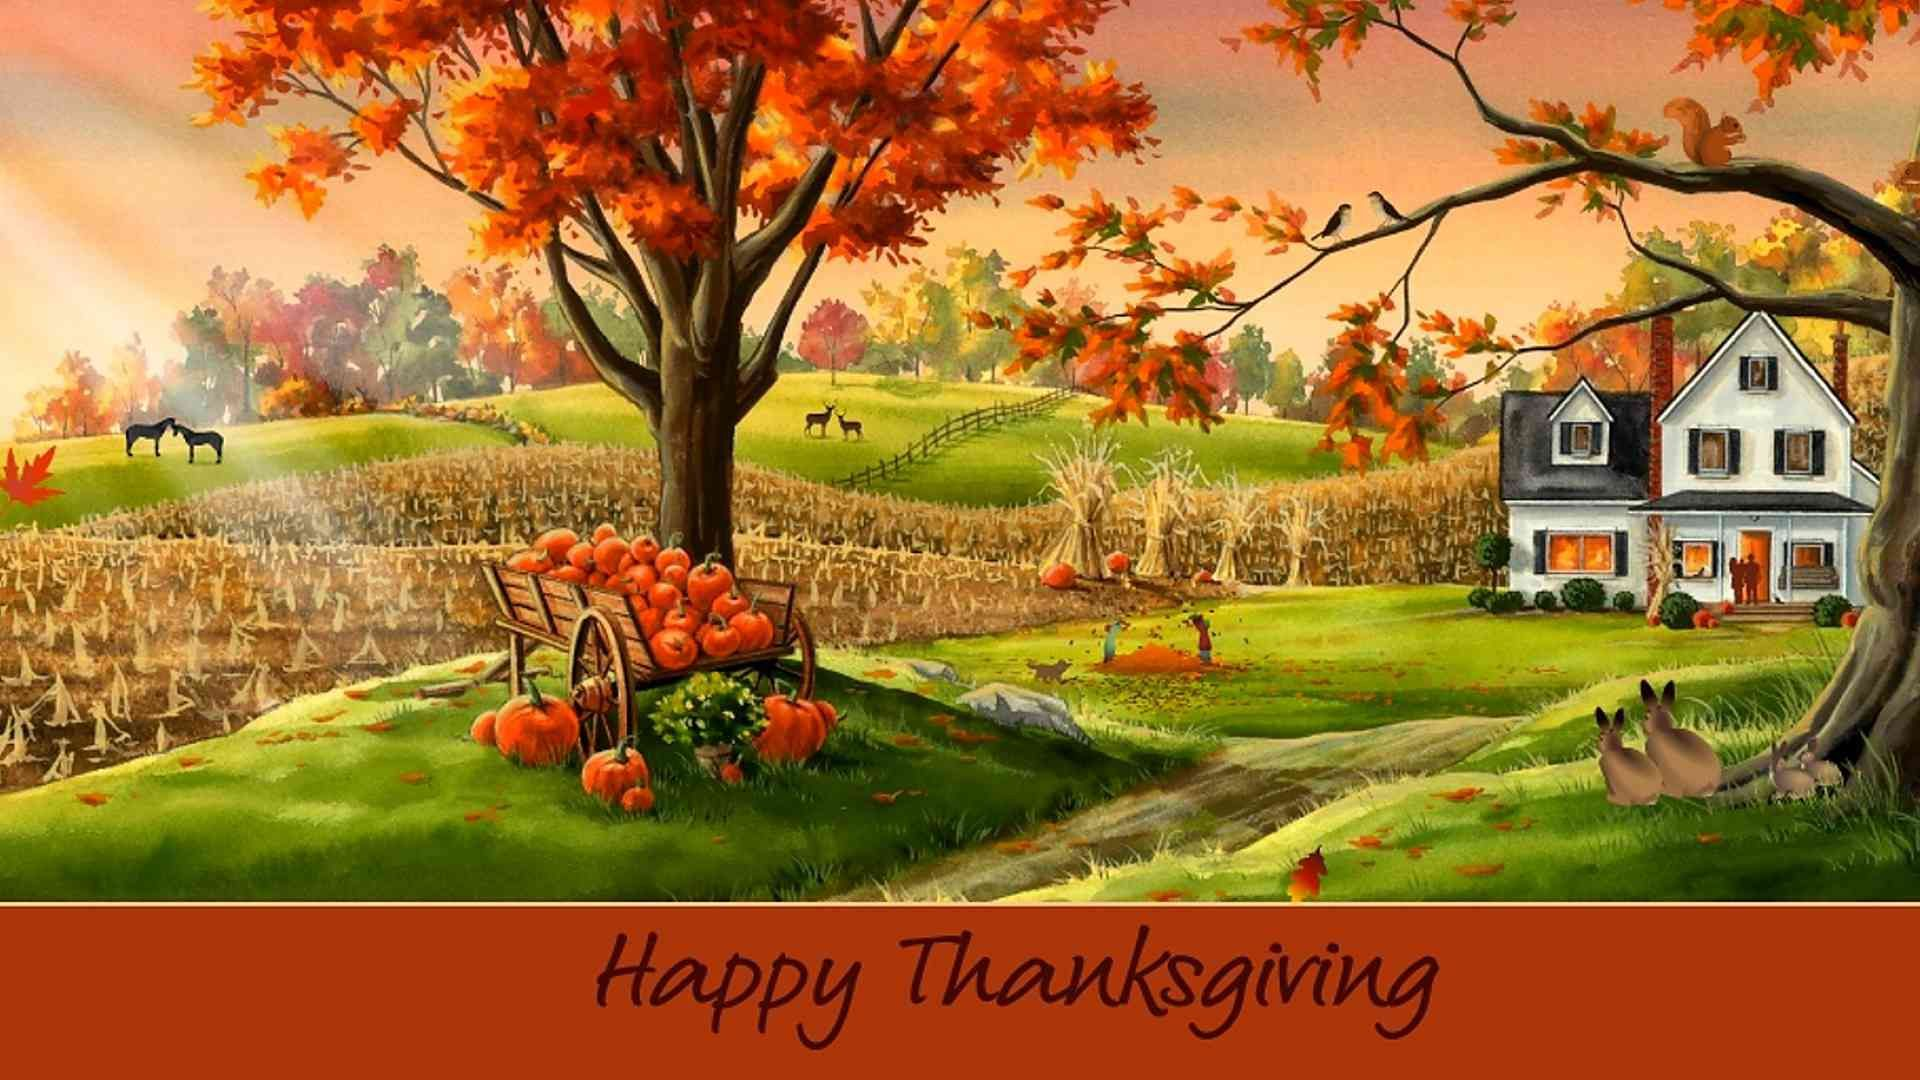 13 Thanksgiving Wallpapers for Your Computer, Tablet, and